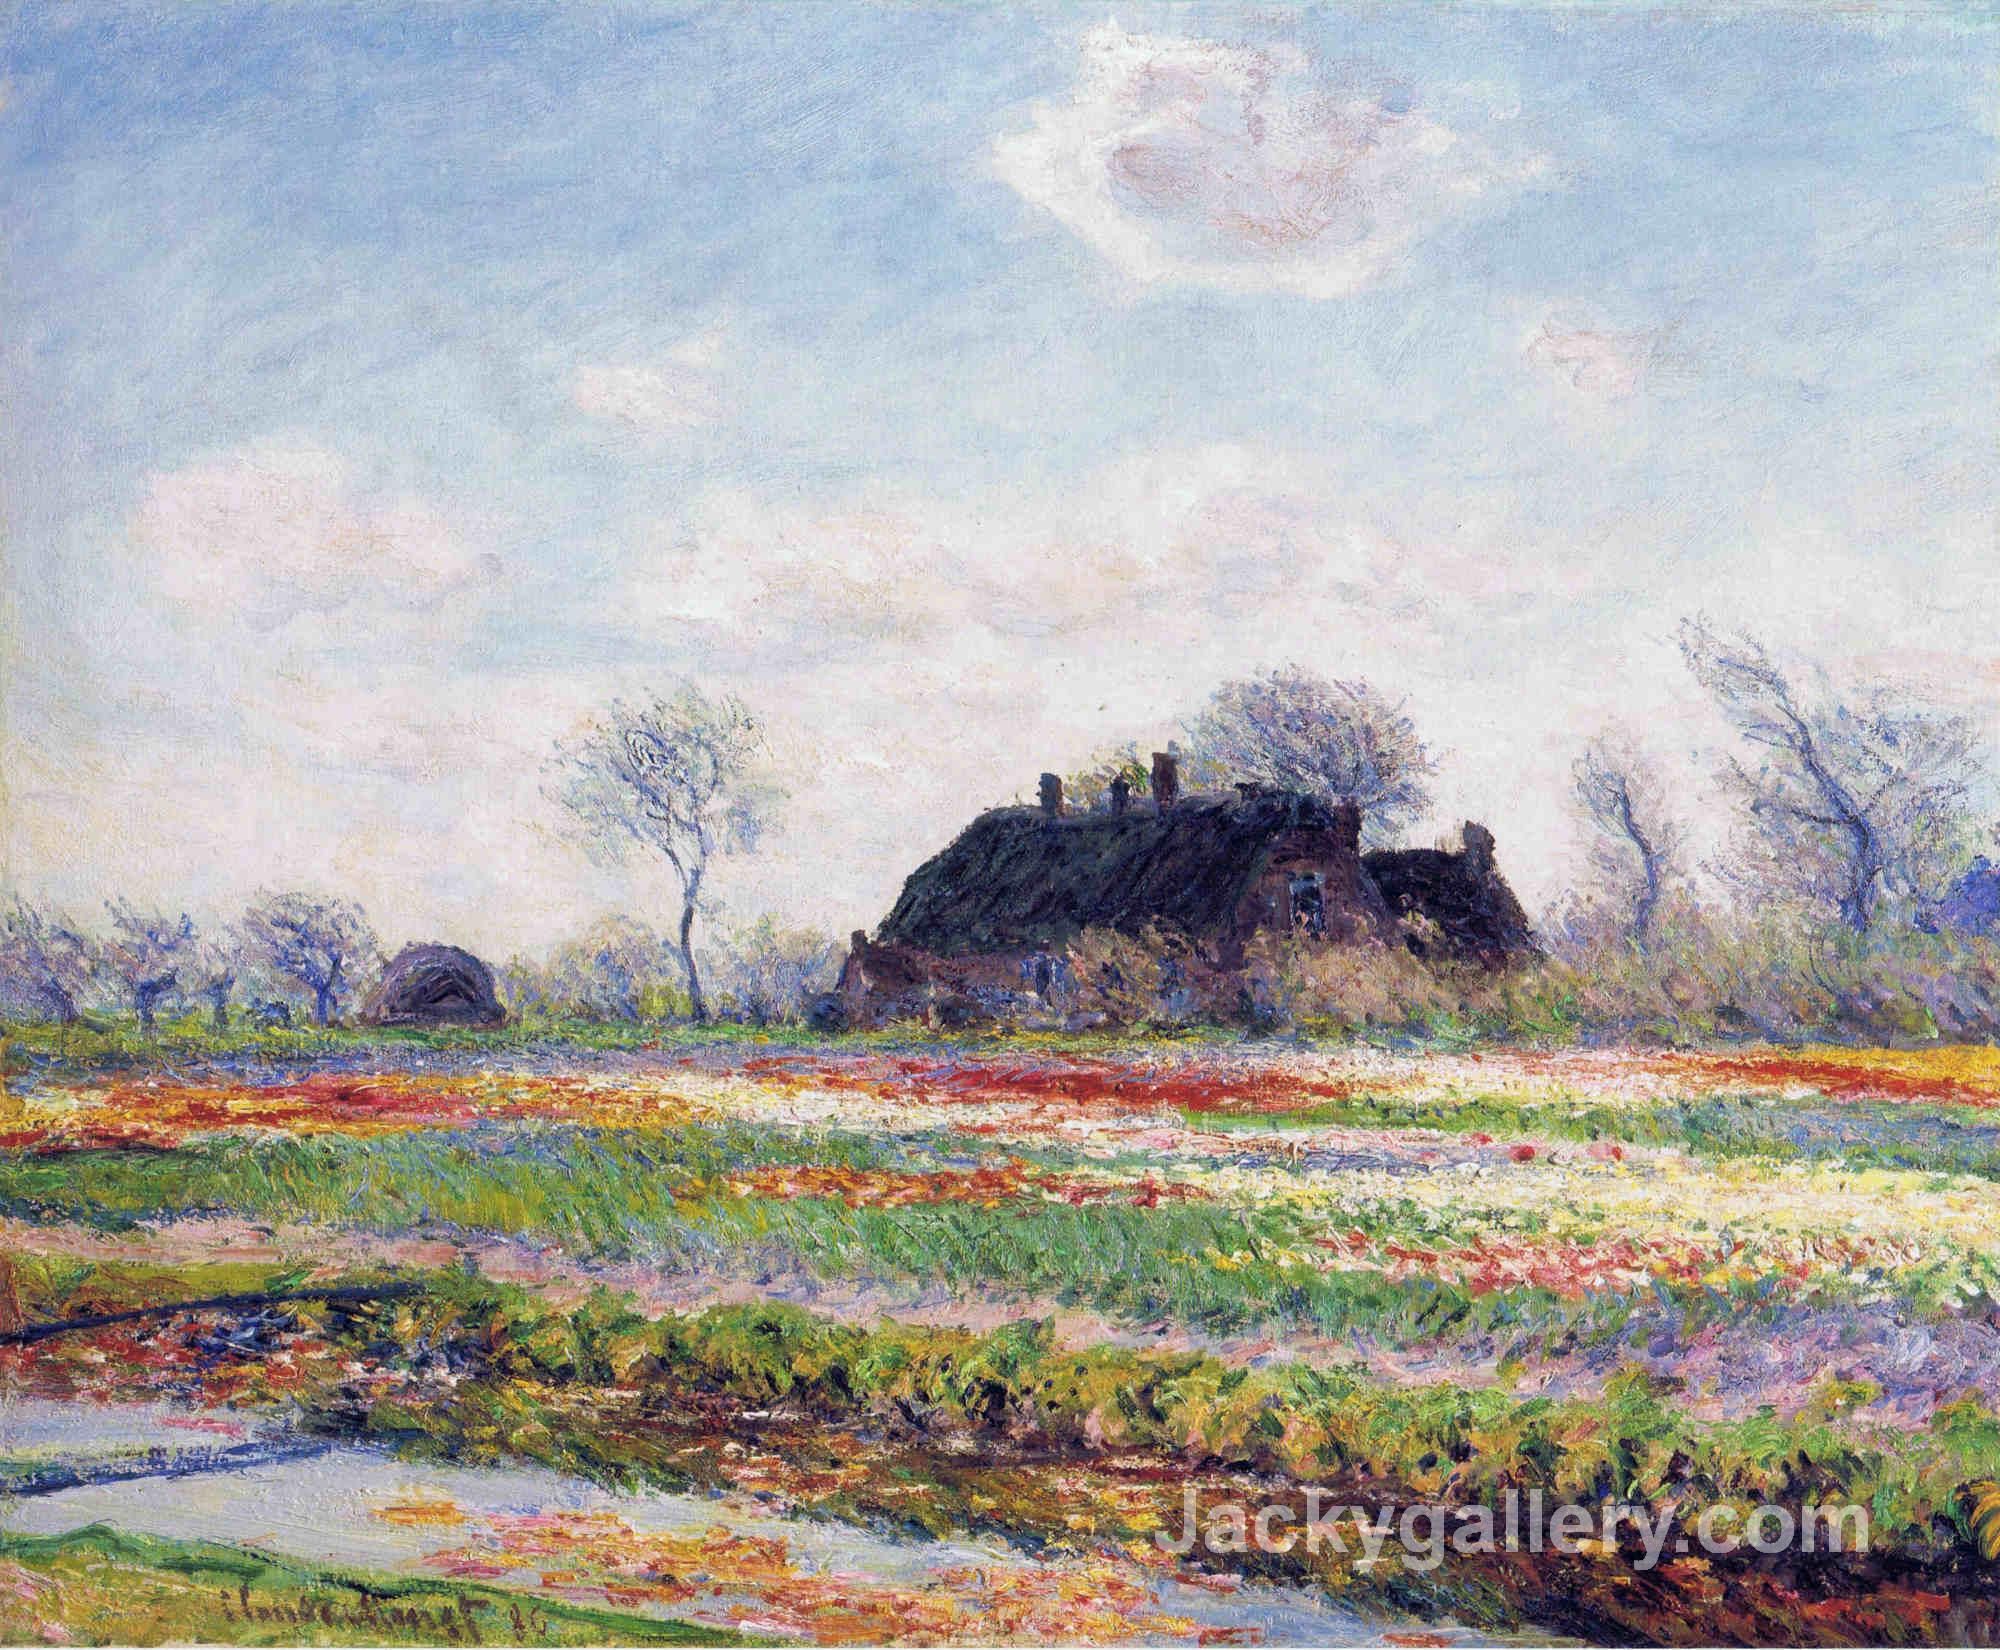 Tulip Fields at Sassenheim, near Leiden by Claude Monet paintings reproduction